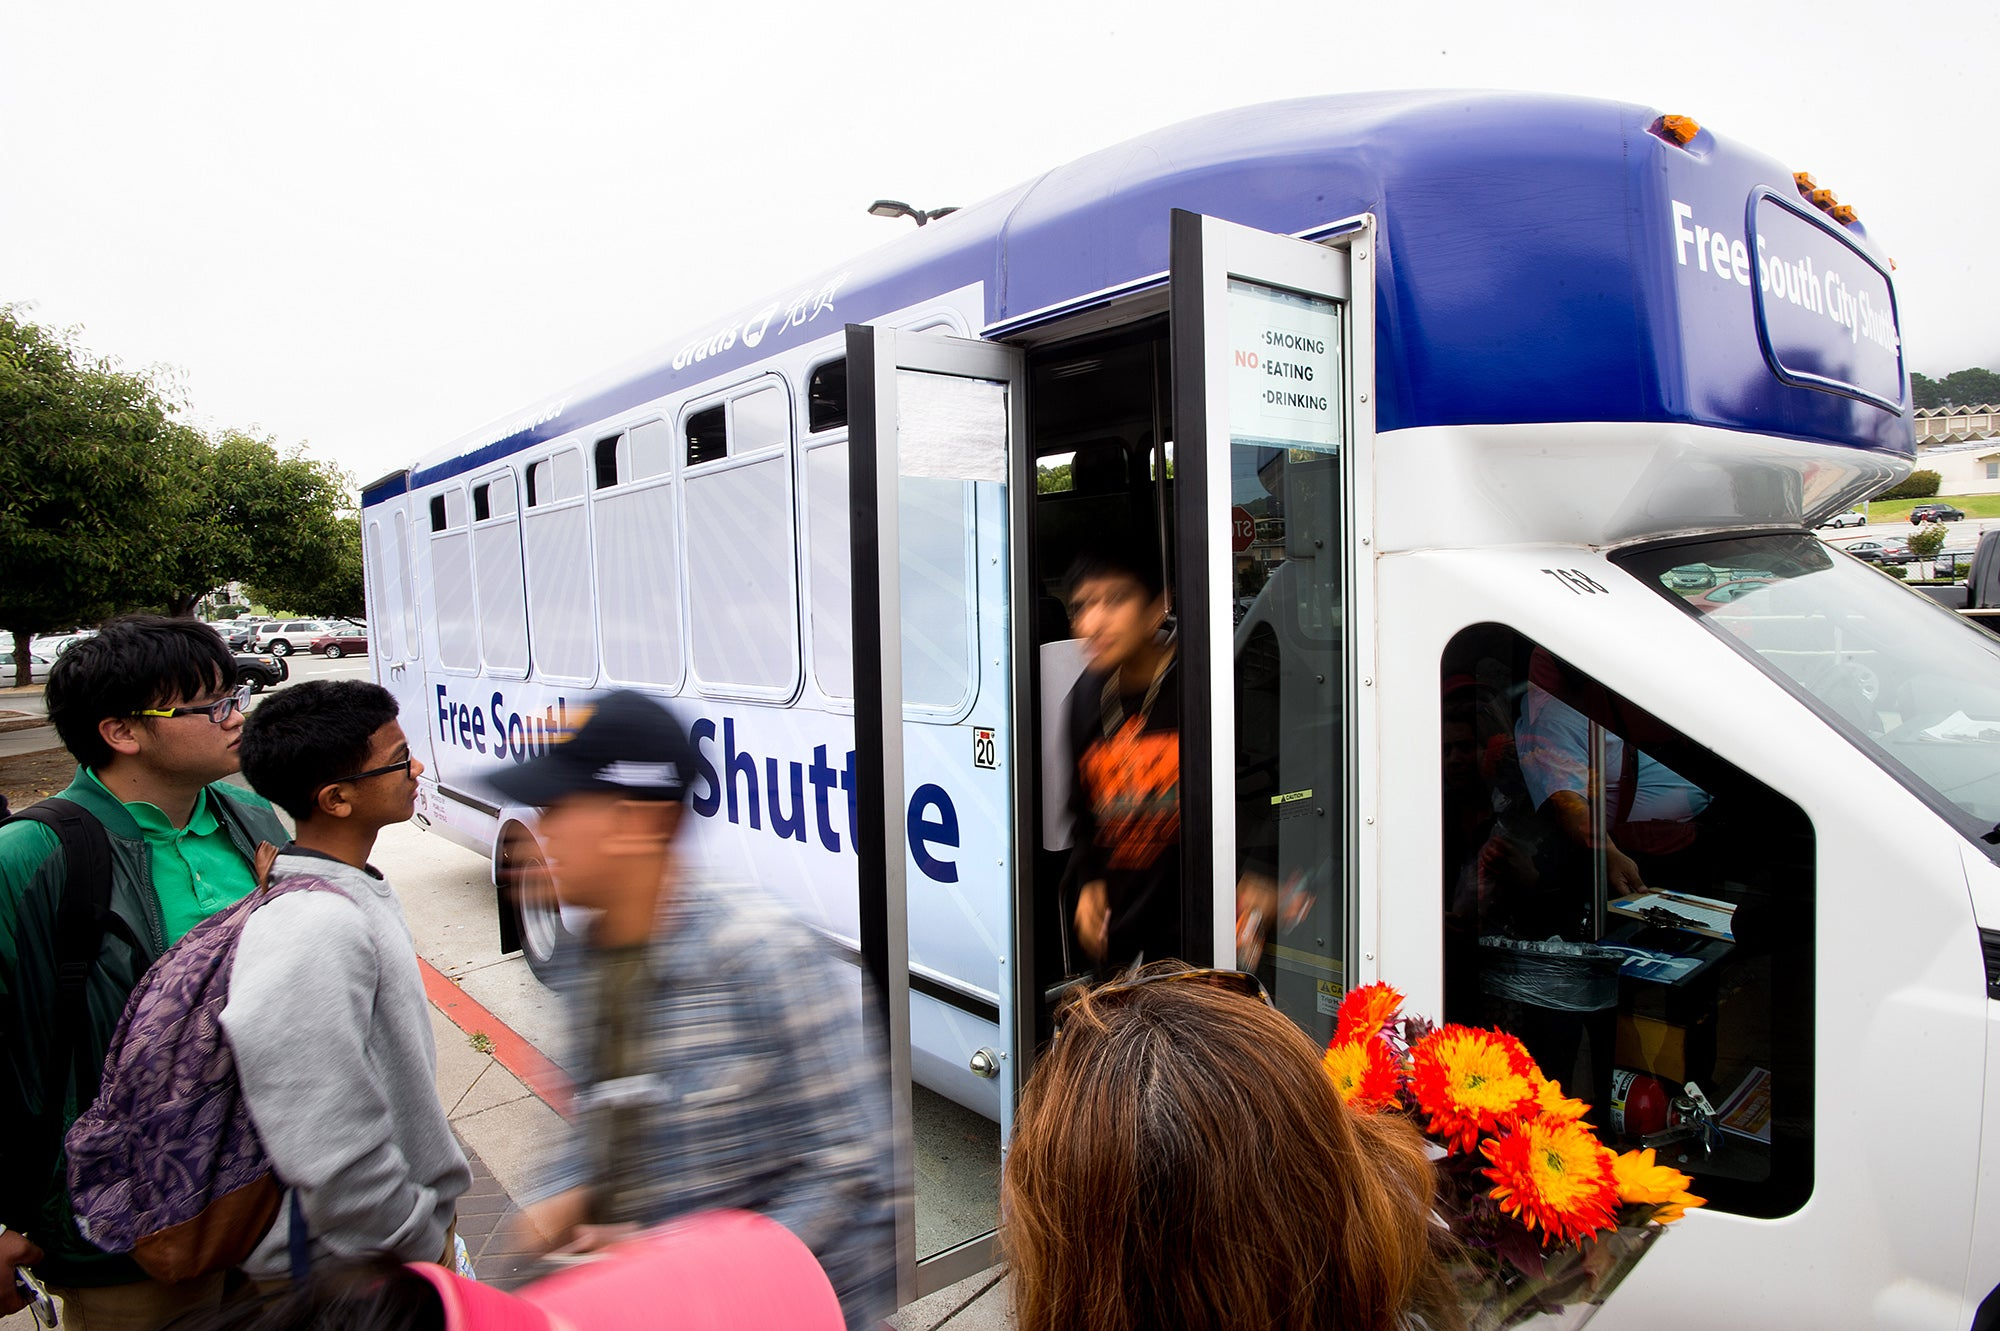 Young people exit the free South San Francisco community shuttle.